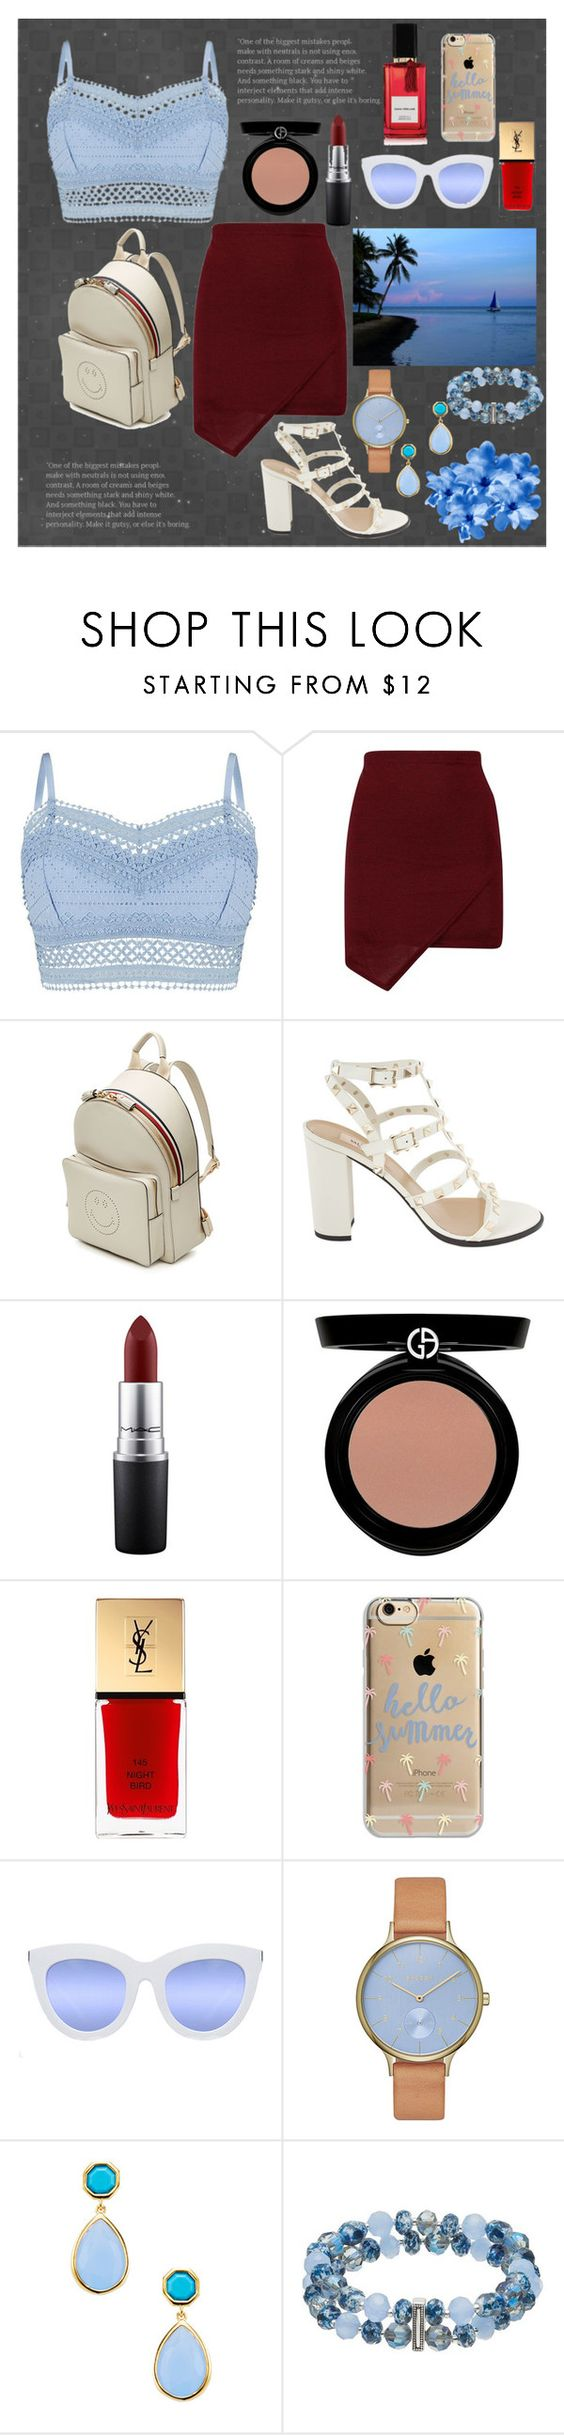 """Beach Walk"" by turikinga on Polyvore featuring Lipsy, Anya Hindmarch, MAC Cosmetics, Giorgio Armani, Yves Saint Laurent, Agent 18, Quay, Skagen, Napier and Diana Vreeland Parfums"